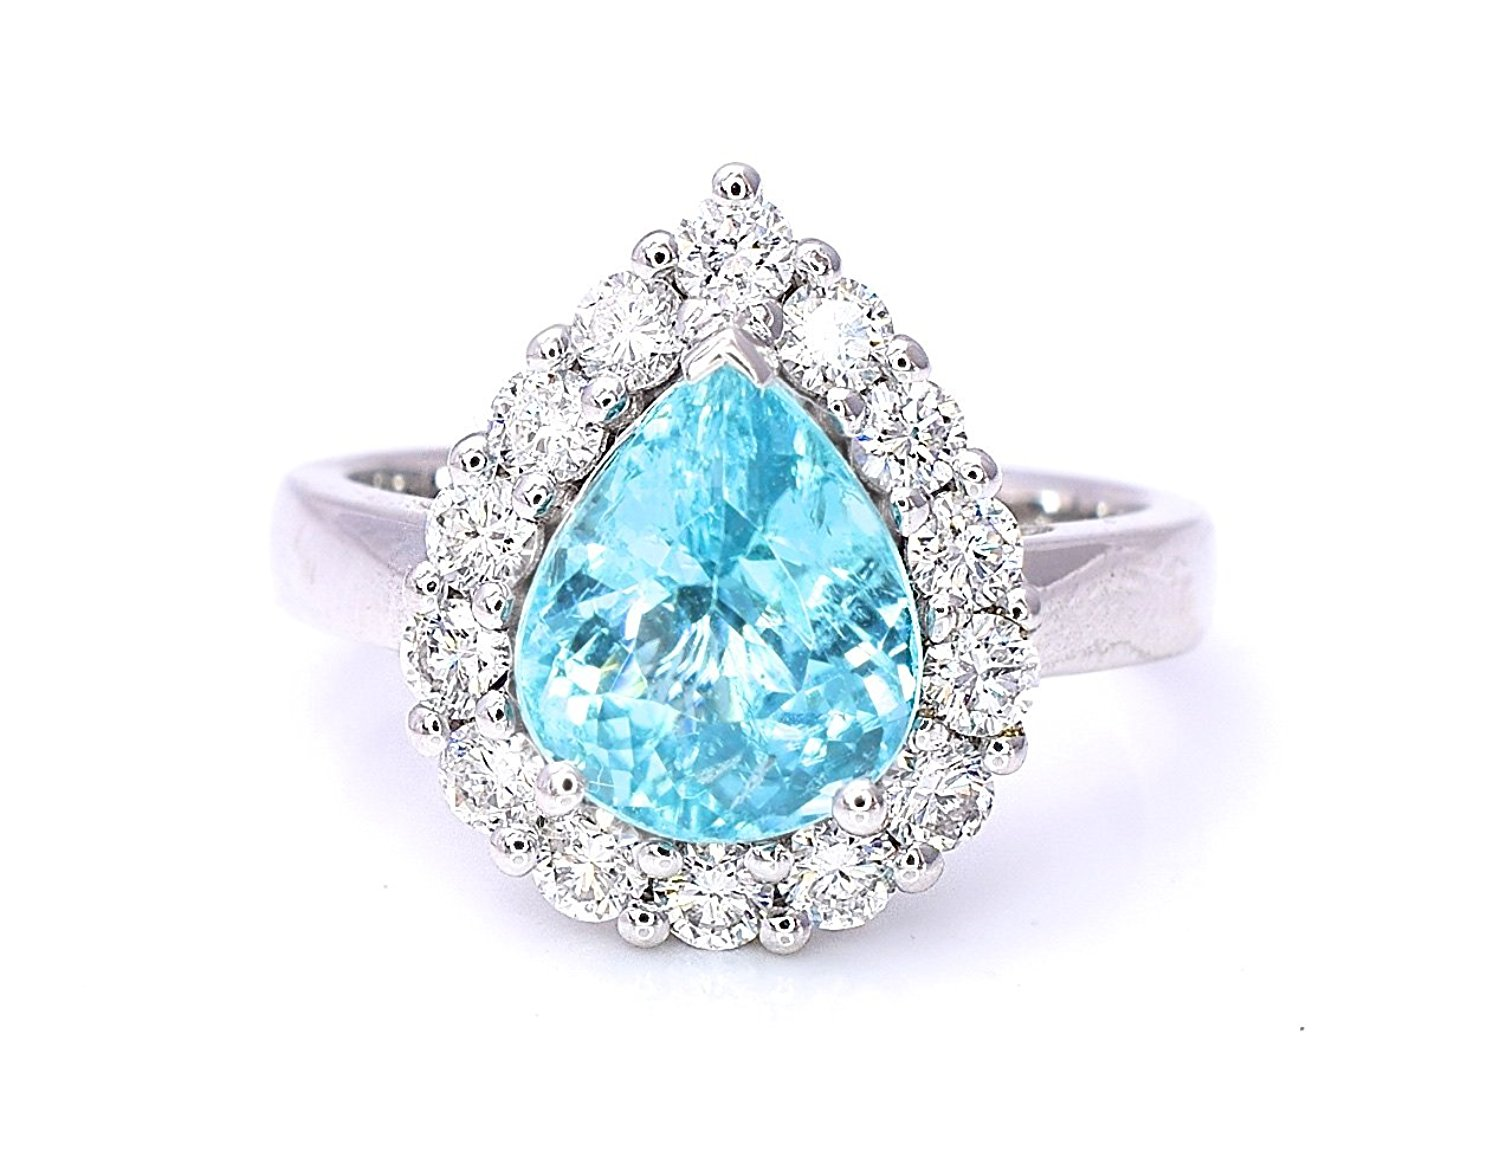 May Design Natural Certified Paraiba Copper Bearing Tourmaline Diamond Halo Ring Neon Blue Green Color, Pear Shape 3.85 cttw (VS-SI/GH) Cocktail Ring 18K White Gold Size 7 1/4